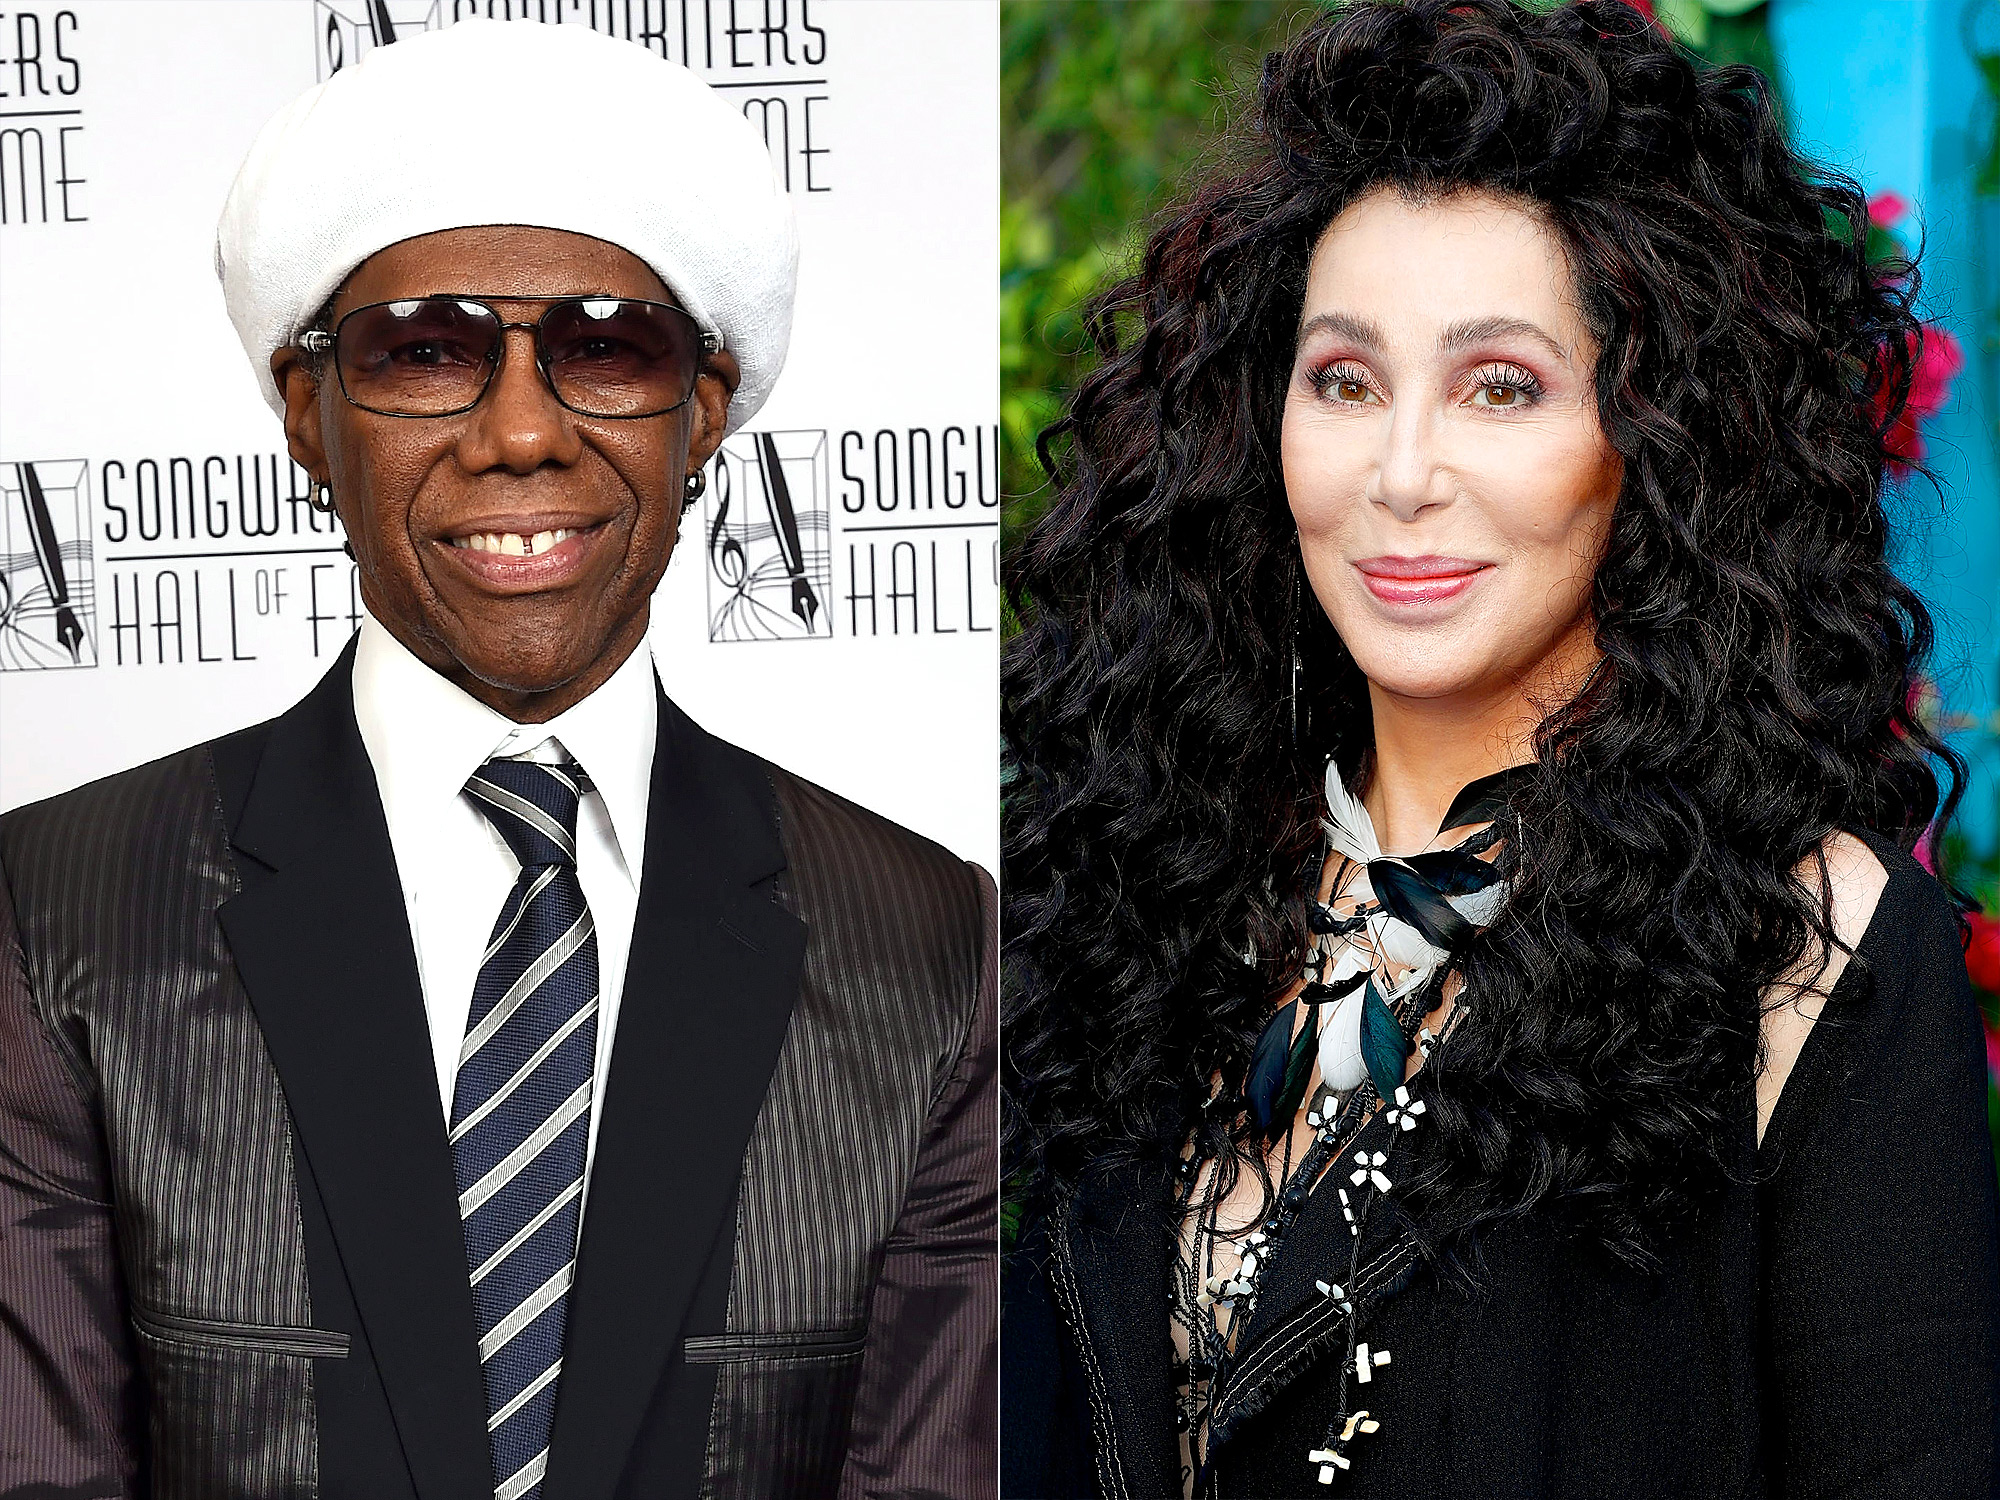 Nile Rodgers and Cher